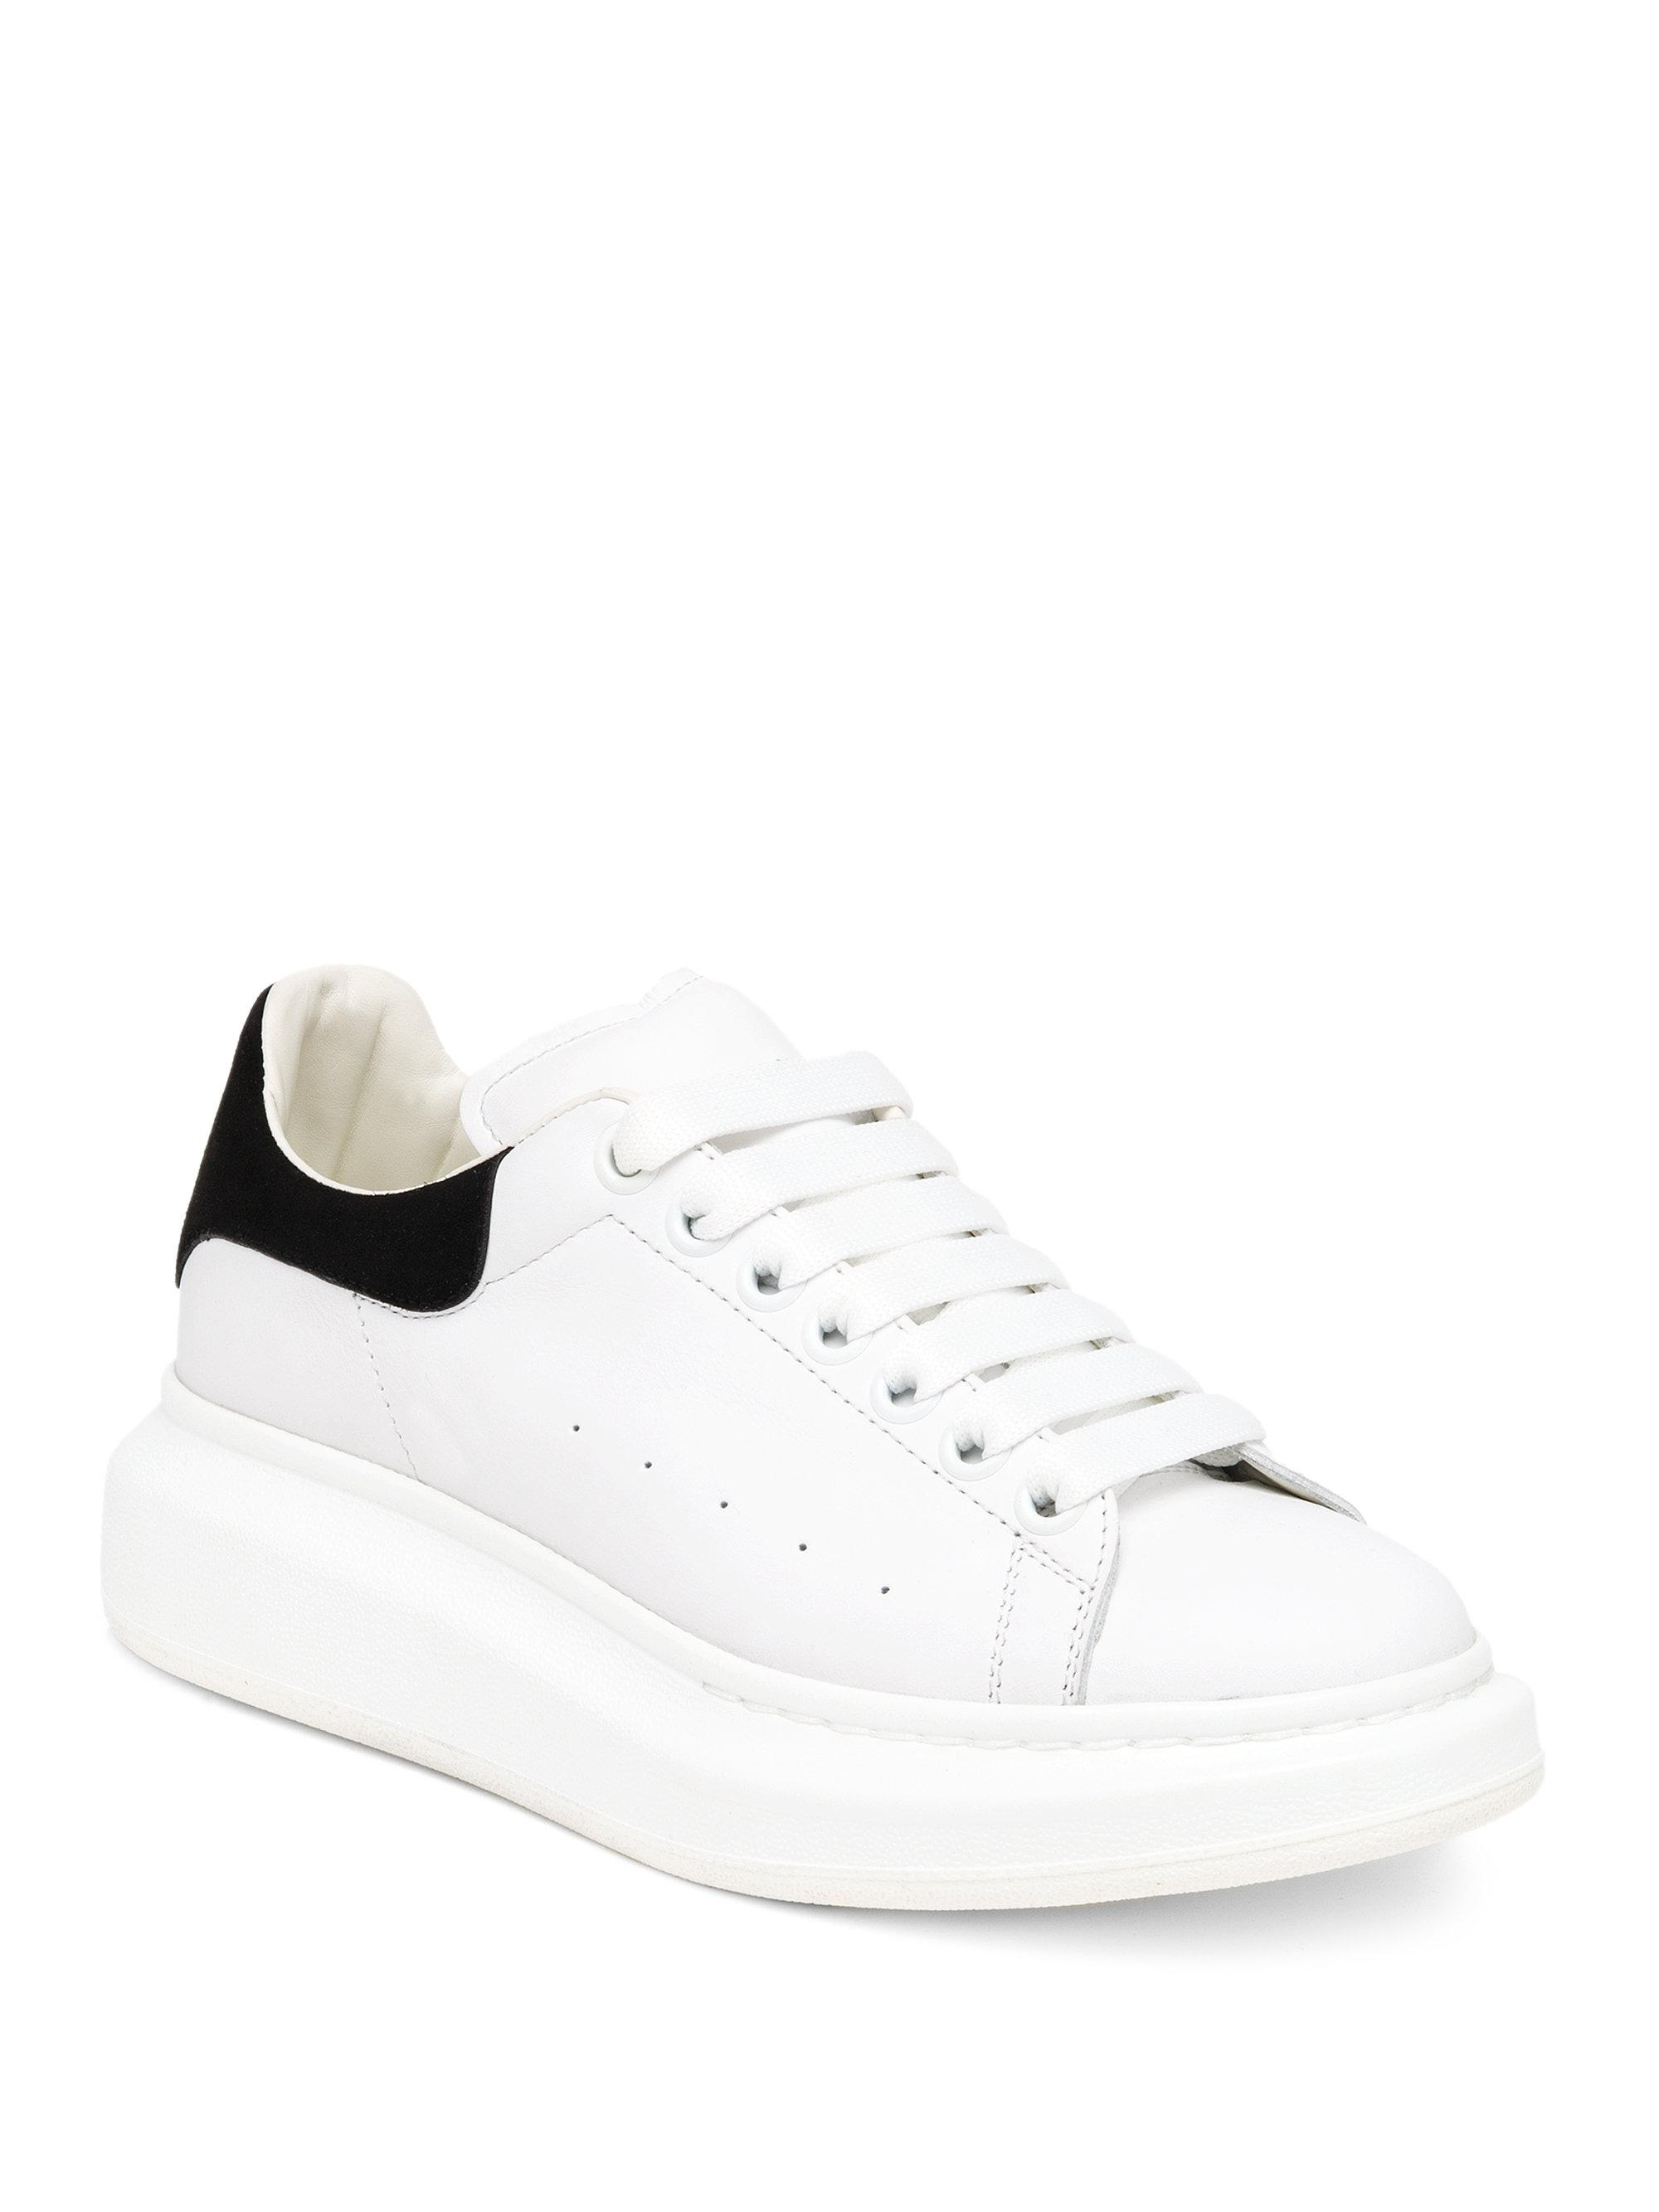 Cheap Usa Stockist Discount Affordable Alexander McQueen Leather platform sneakers Discount New EhQ6k6